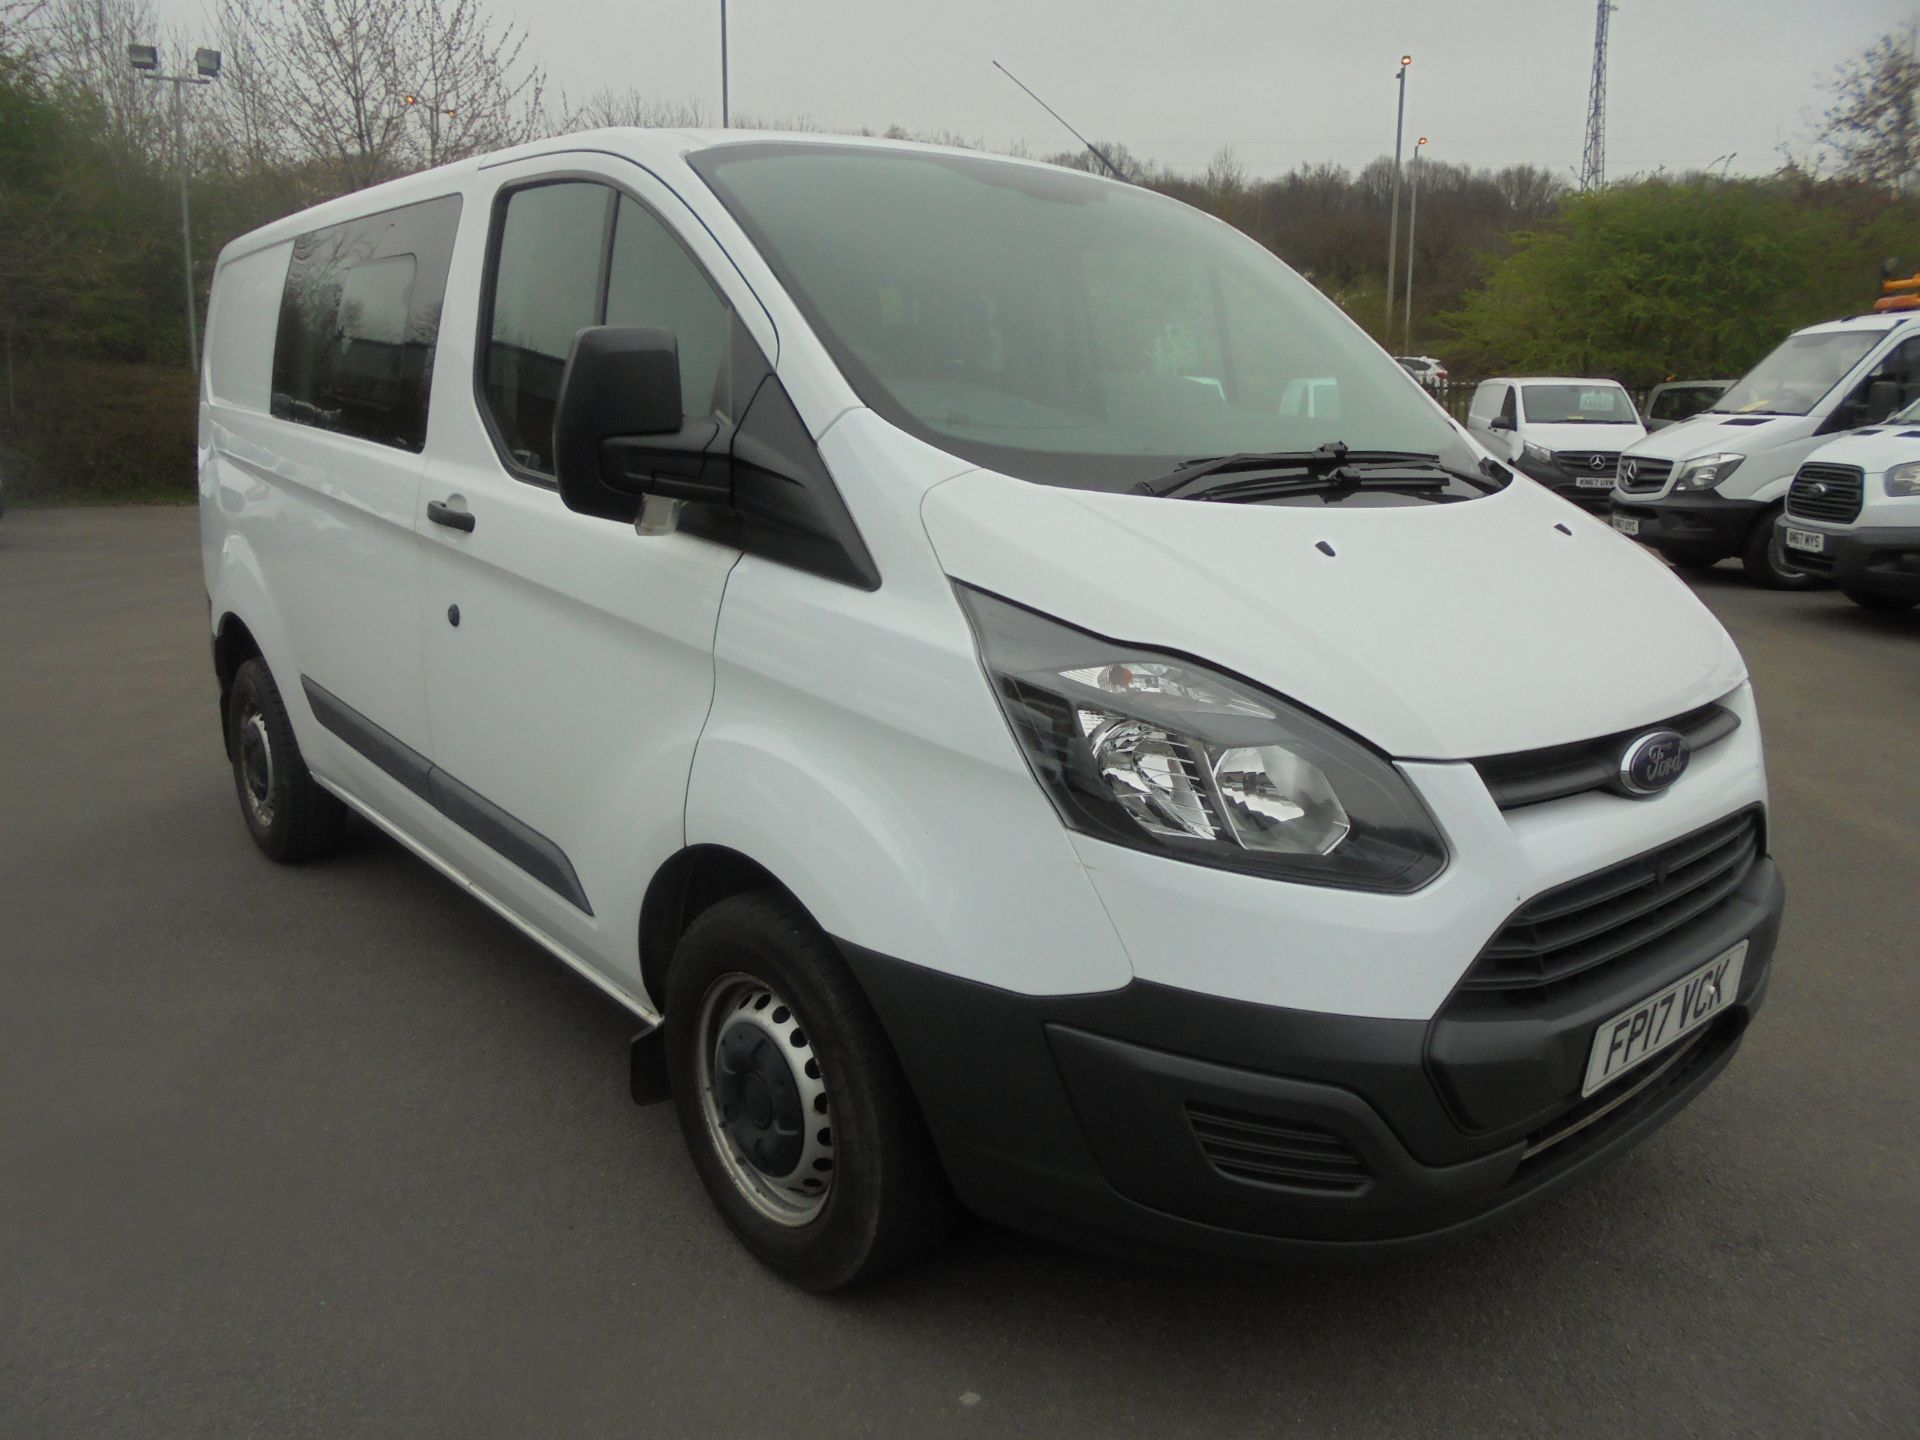 2017 Ford Transit Custom 2.0 Tdci 105Ps Low Roof D/Cab Van (FP17VCK)